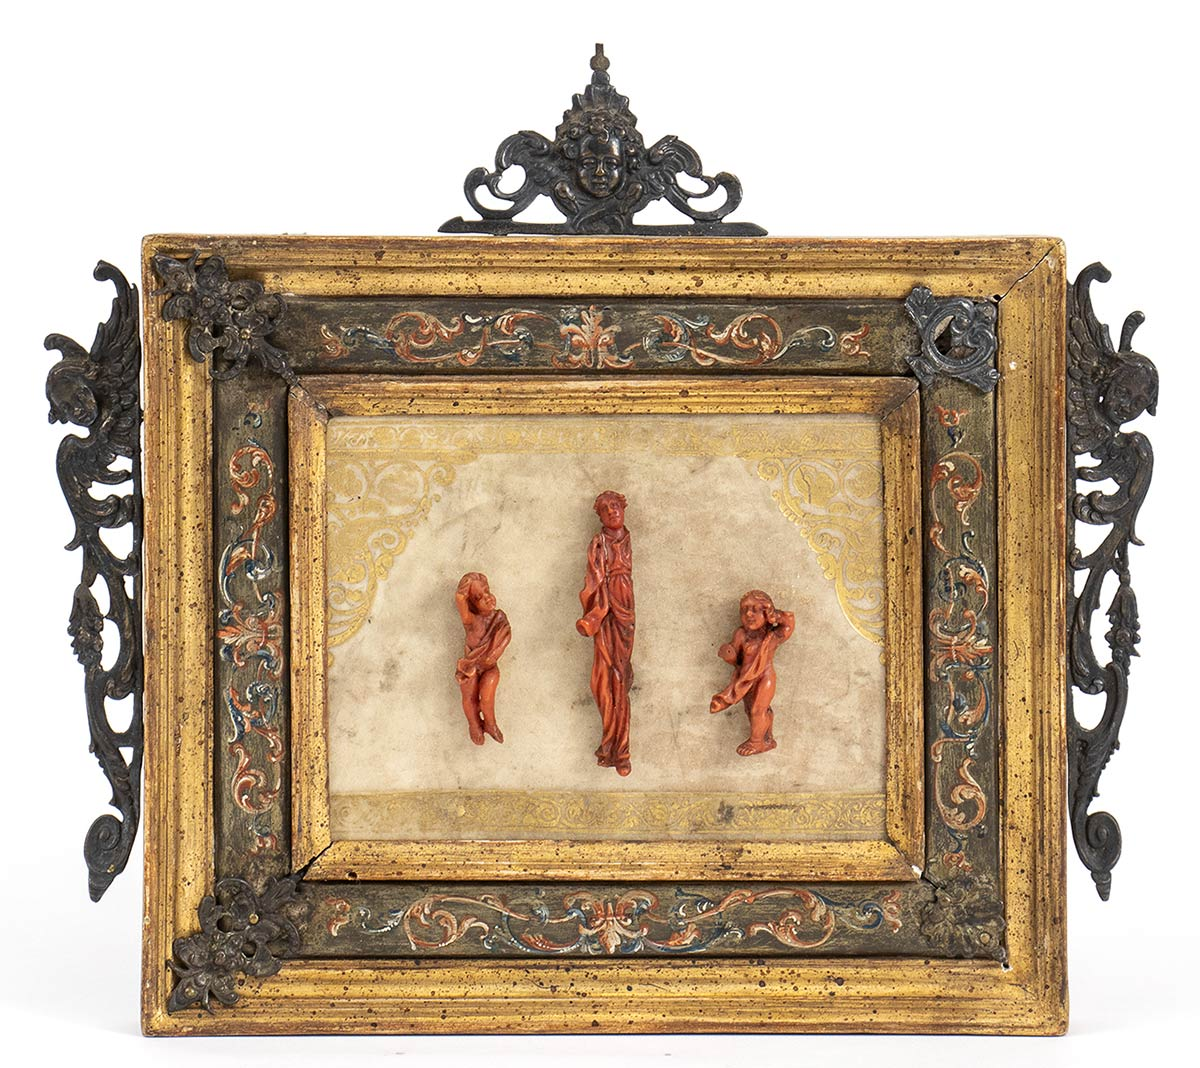 An Italian Mediterranean coral carvings with wooden frame - probably Naples, 18th Century